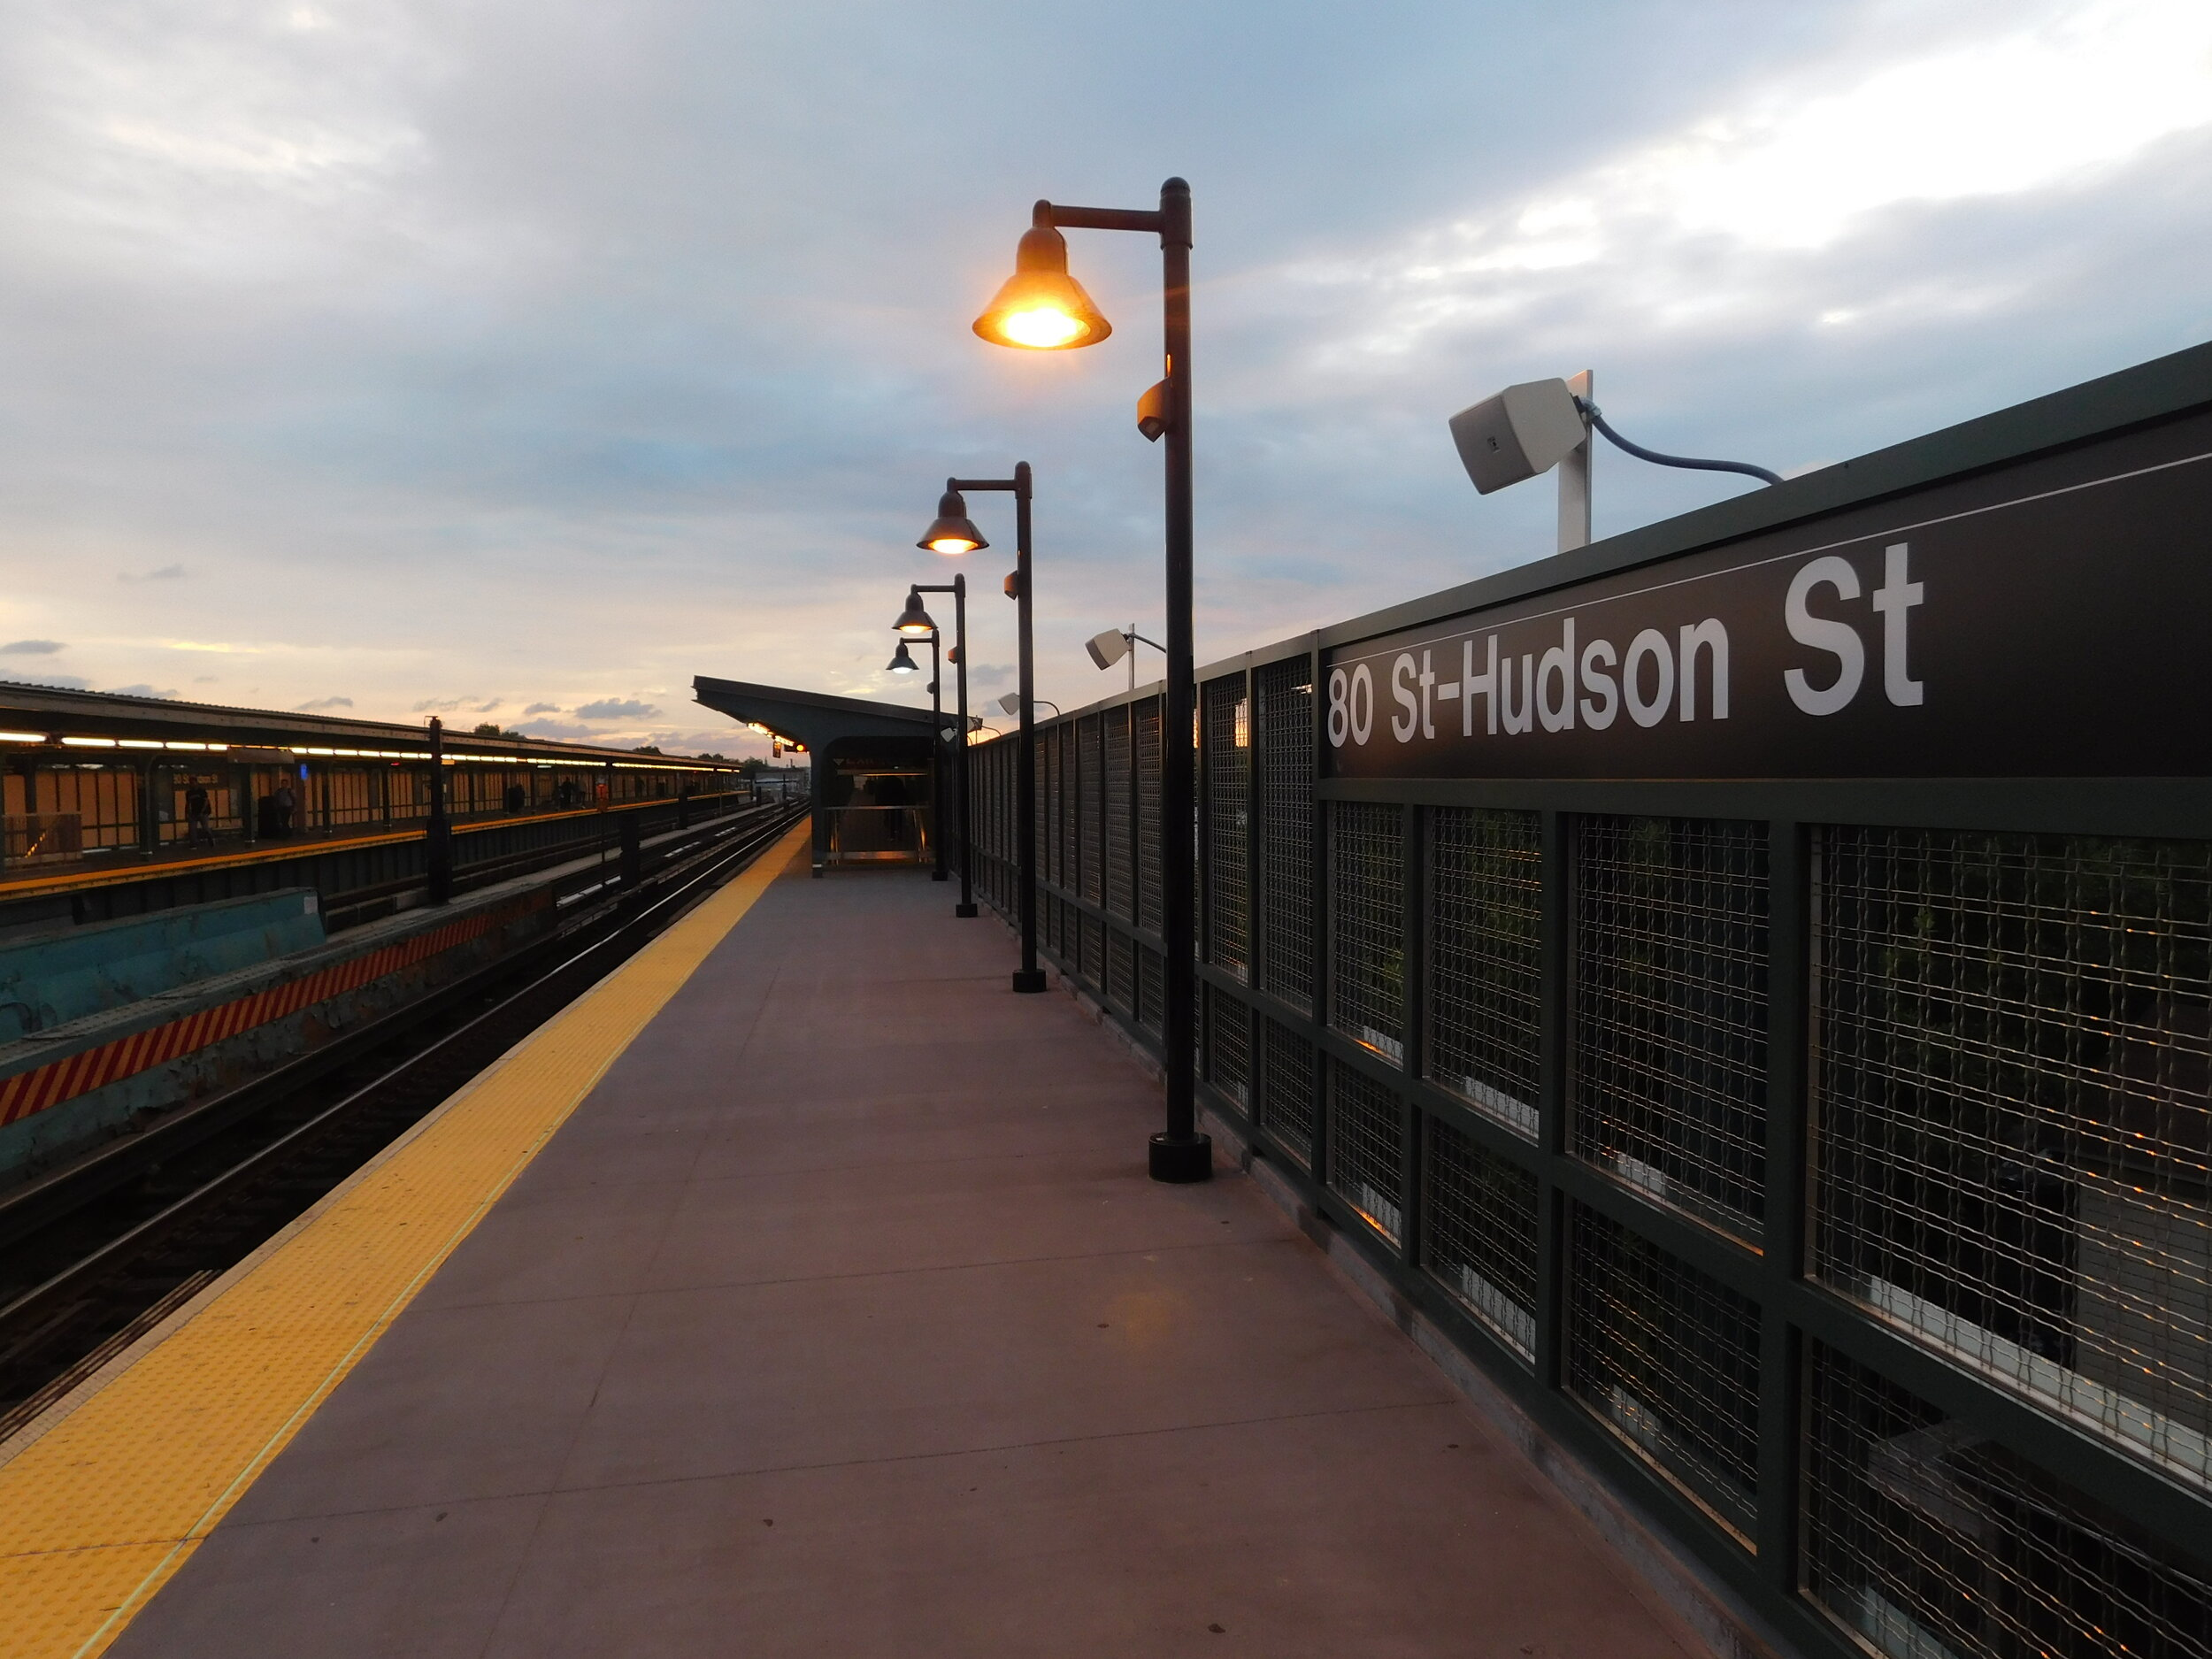 A series of attacks in Ozone Park, including one Friday at the 80th Street-Hudson Street A Train station, have galvanized community members who are participating in a rally for security today. Photo by  Adam Moss/Flickr .